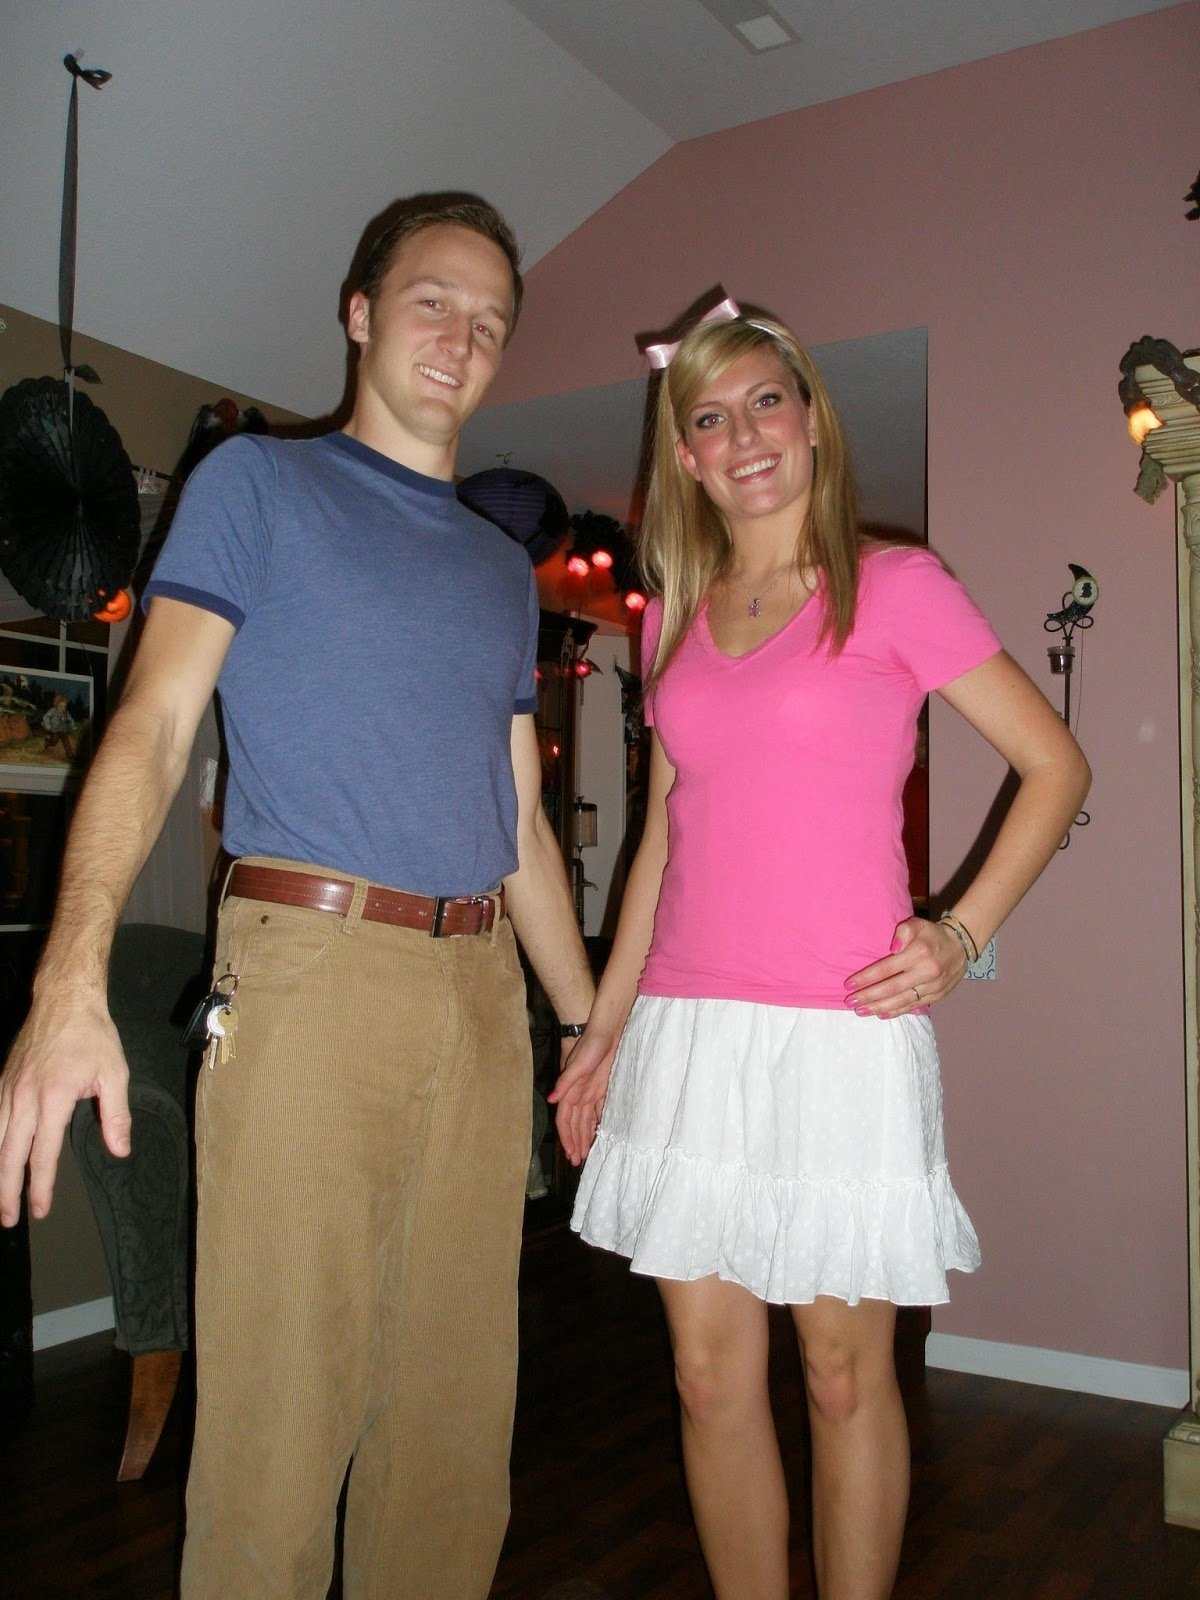 57 couples diy costumes, top 10 tuesdays: funny costumes halloween